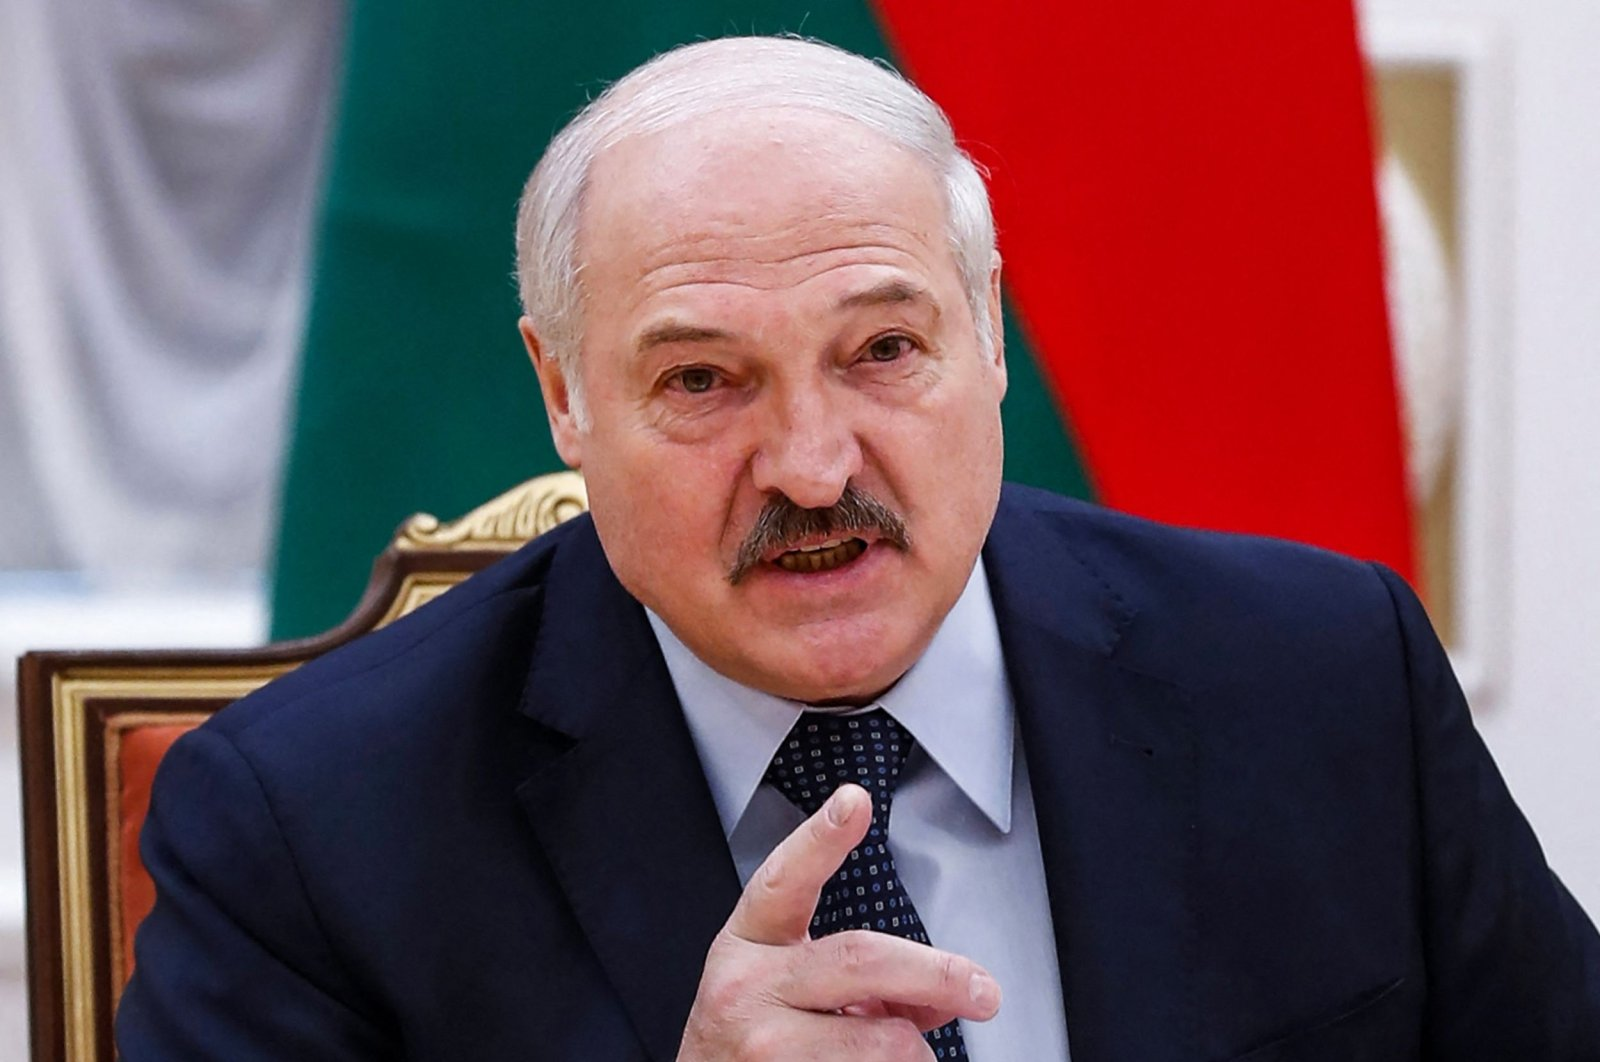 Belarusian President Alexander Lukashenko speaks during a meeting with Commonwealth of Independent States officials in Minsk, Belarus, May 28, 2021. (AFP File Photo)